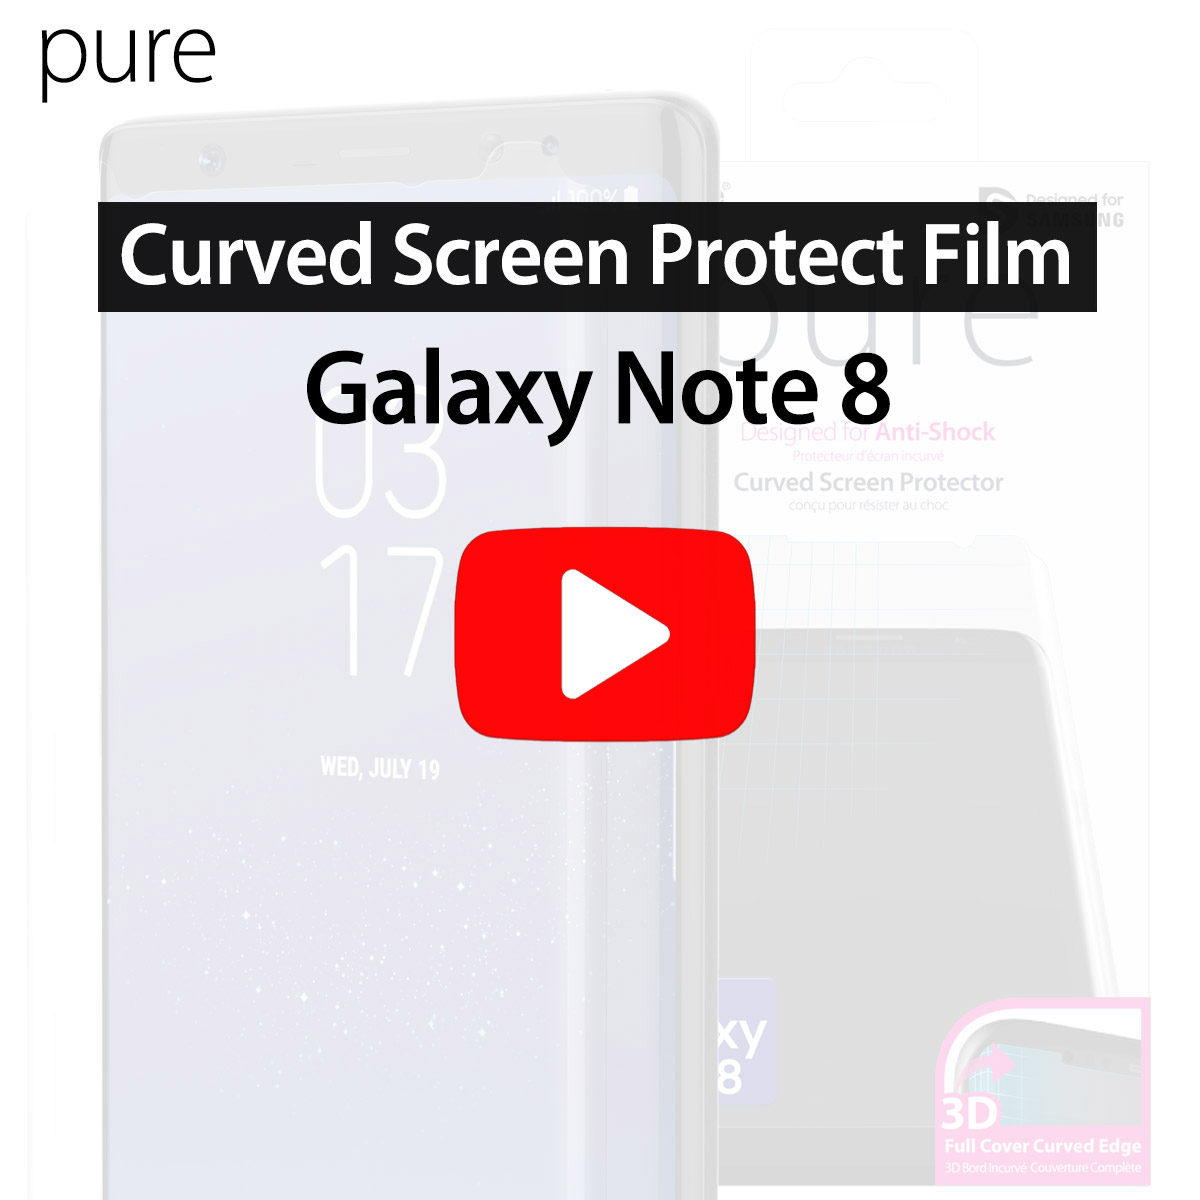 Galaxy Note8]Curved Screen Protector Film Install Guide